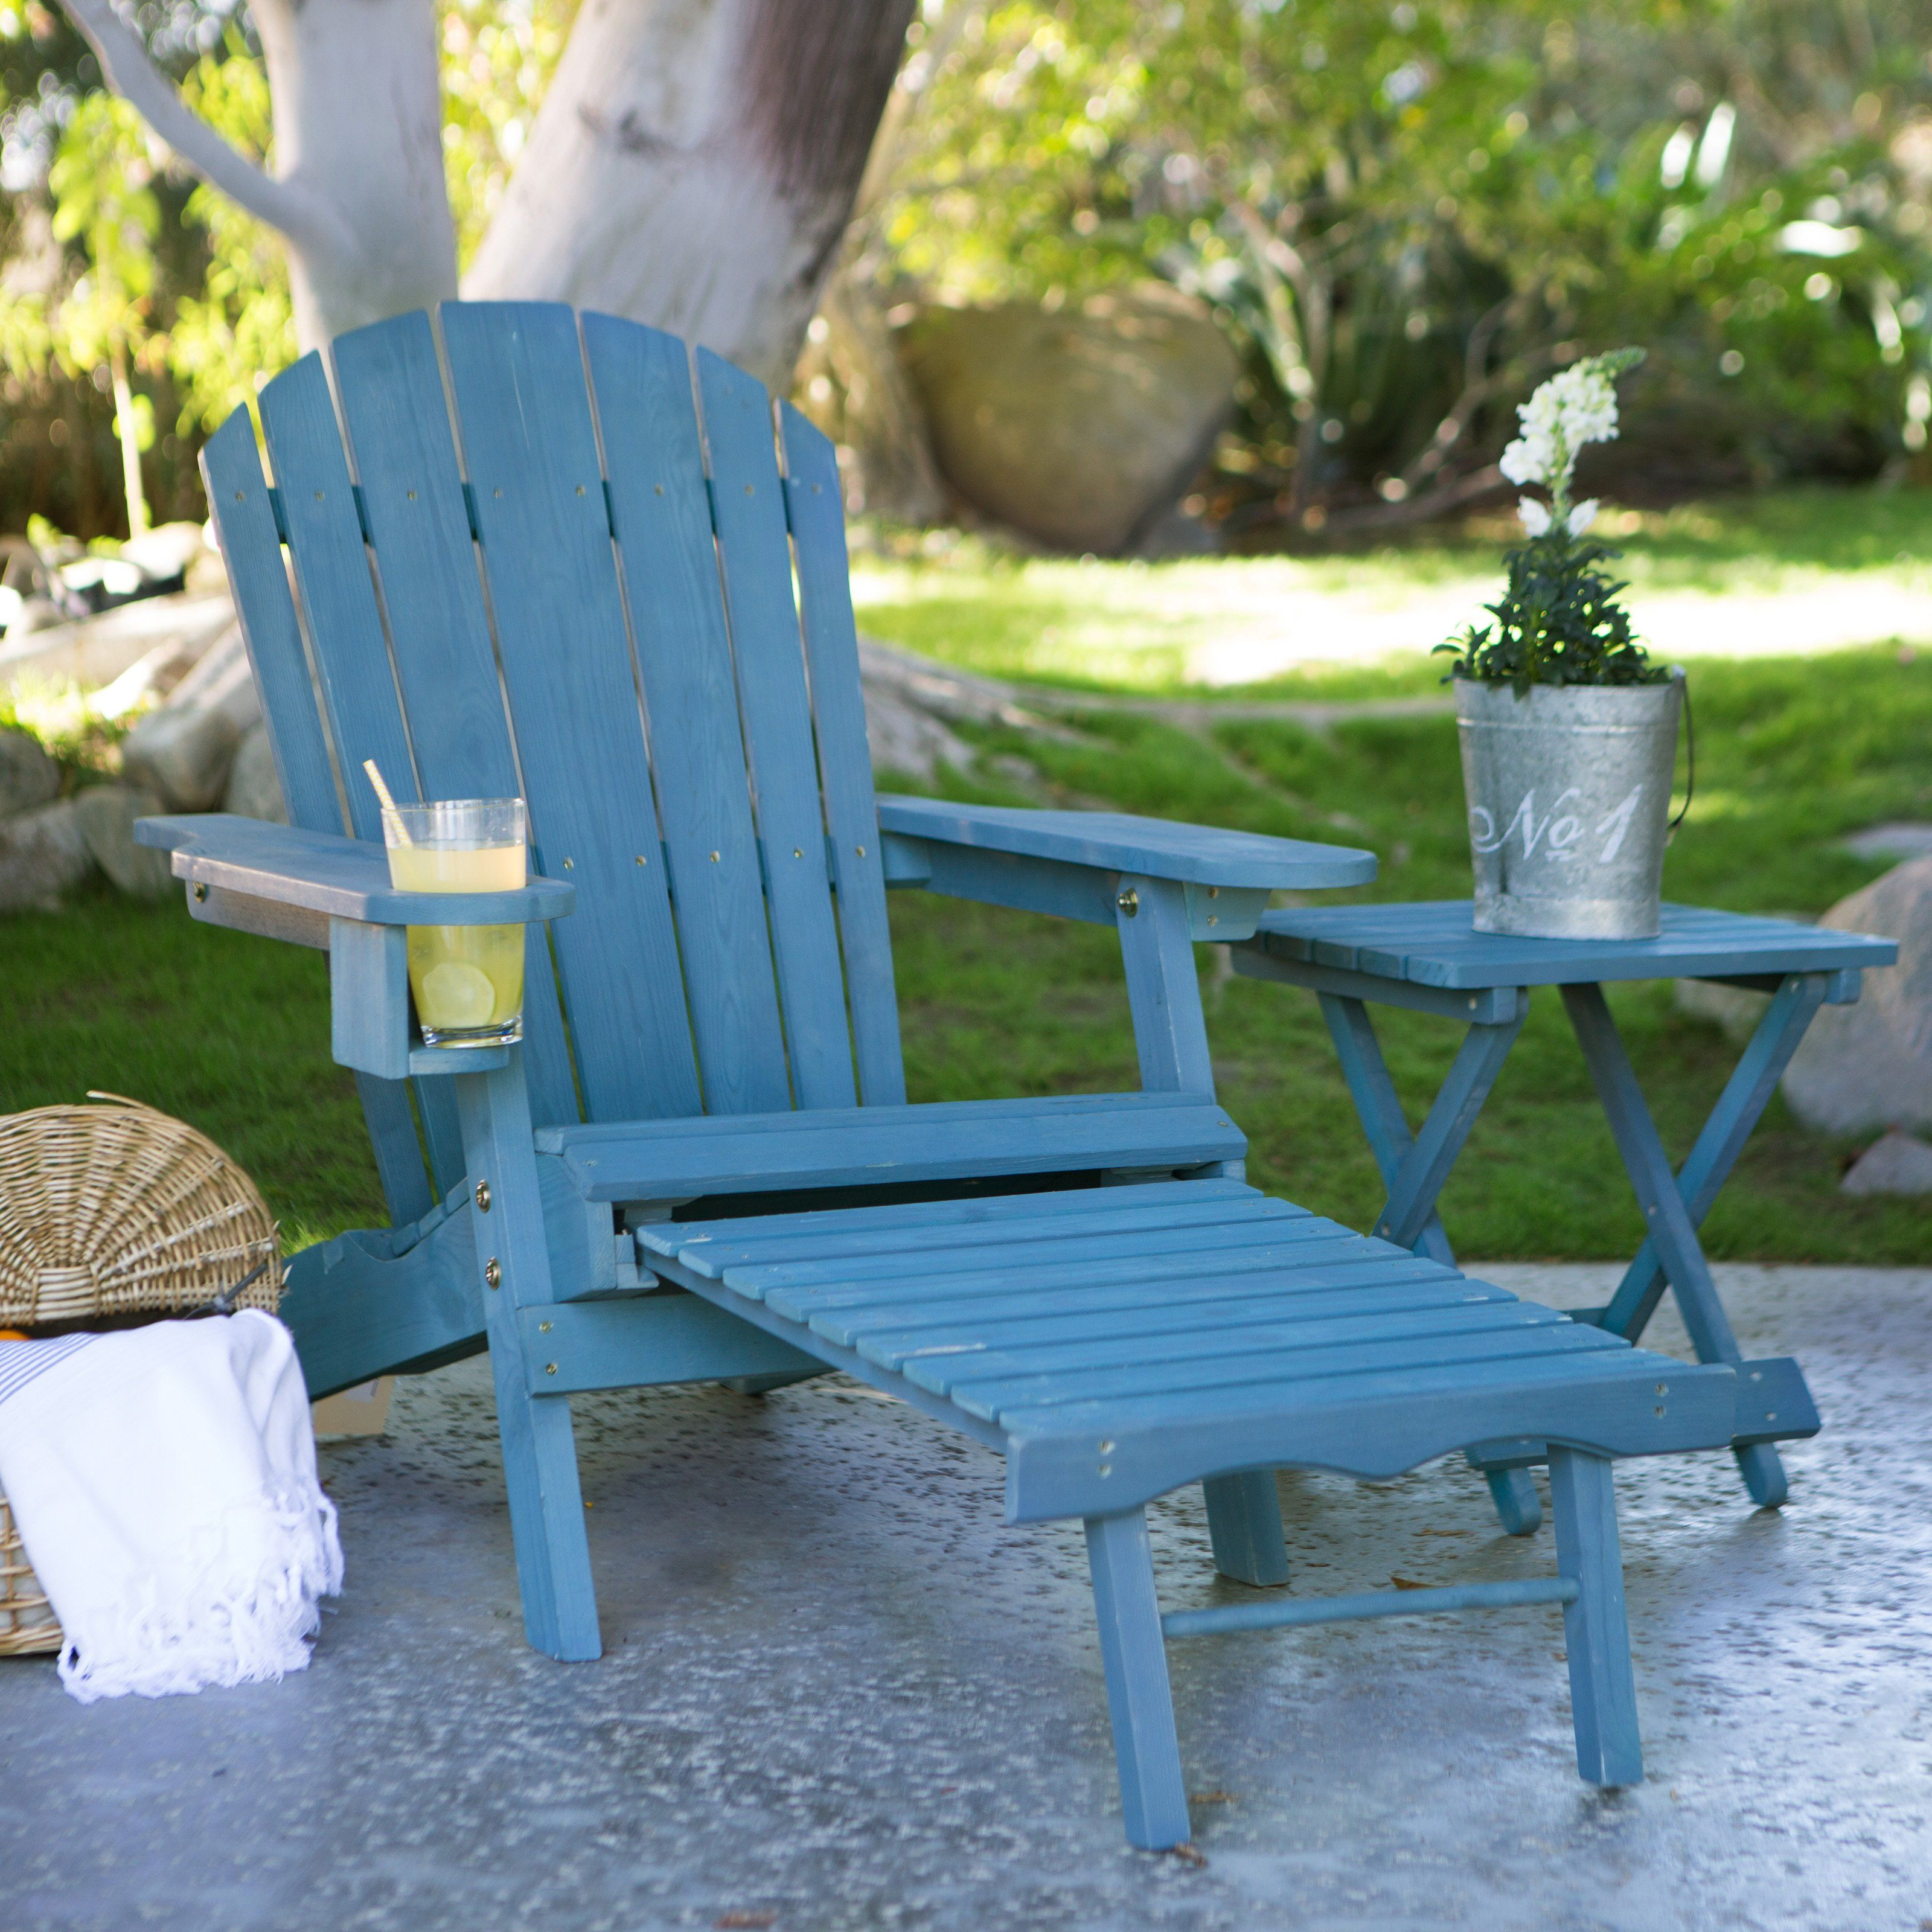 38 Best Outside Entertainment Images On Pinterest | Pier 1 Imports, Outdoor  Furniture And Outdoor Spaces